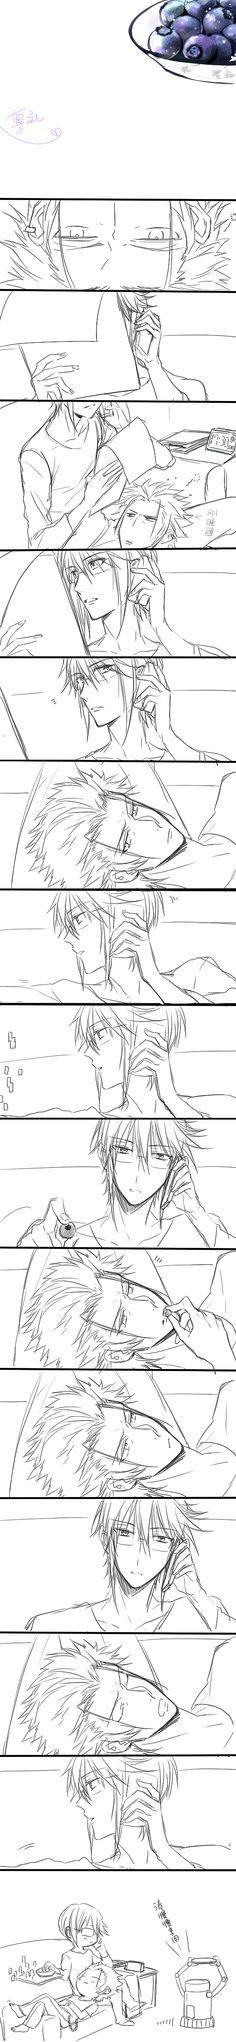 Mikoto x Munakata ............I need to stop shipping male characters all the time.